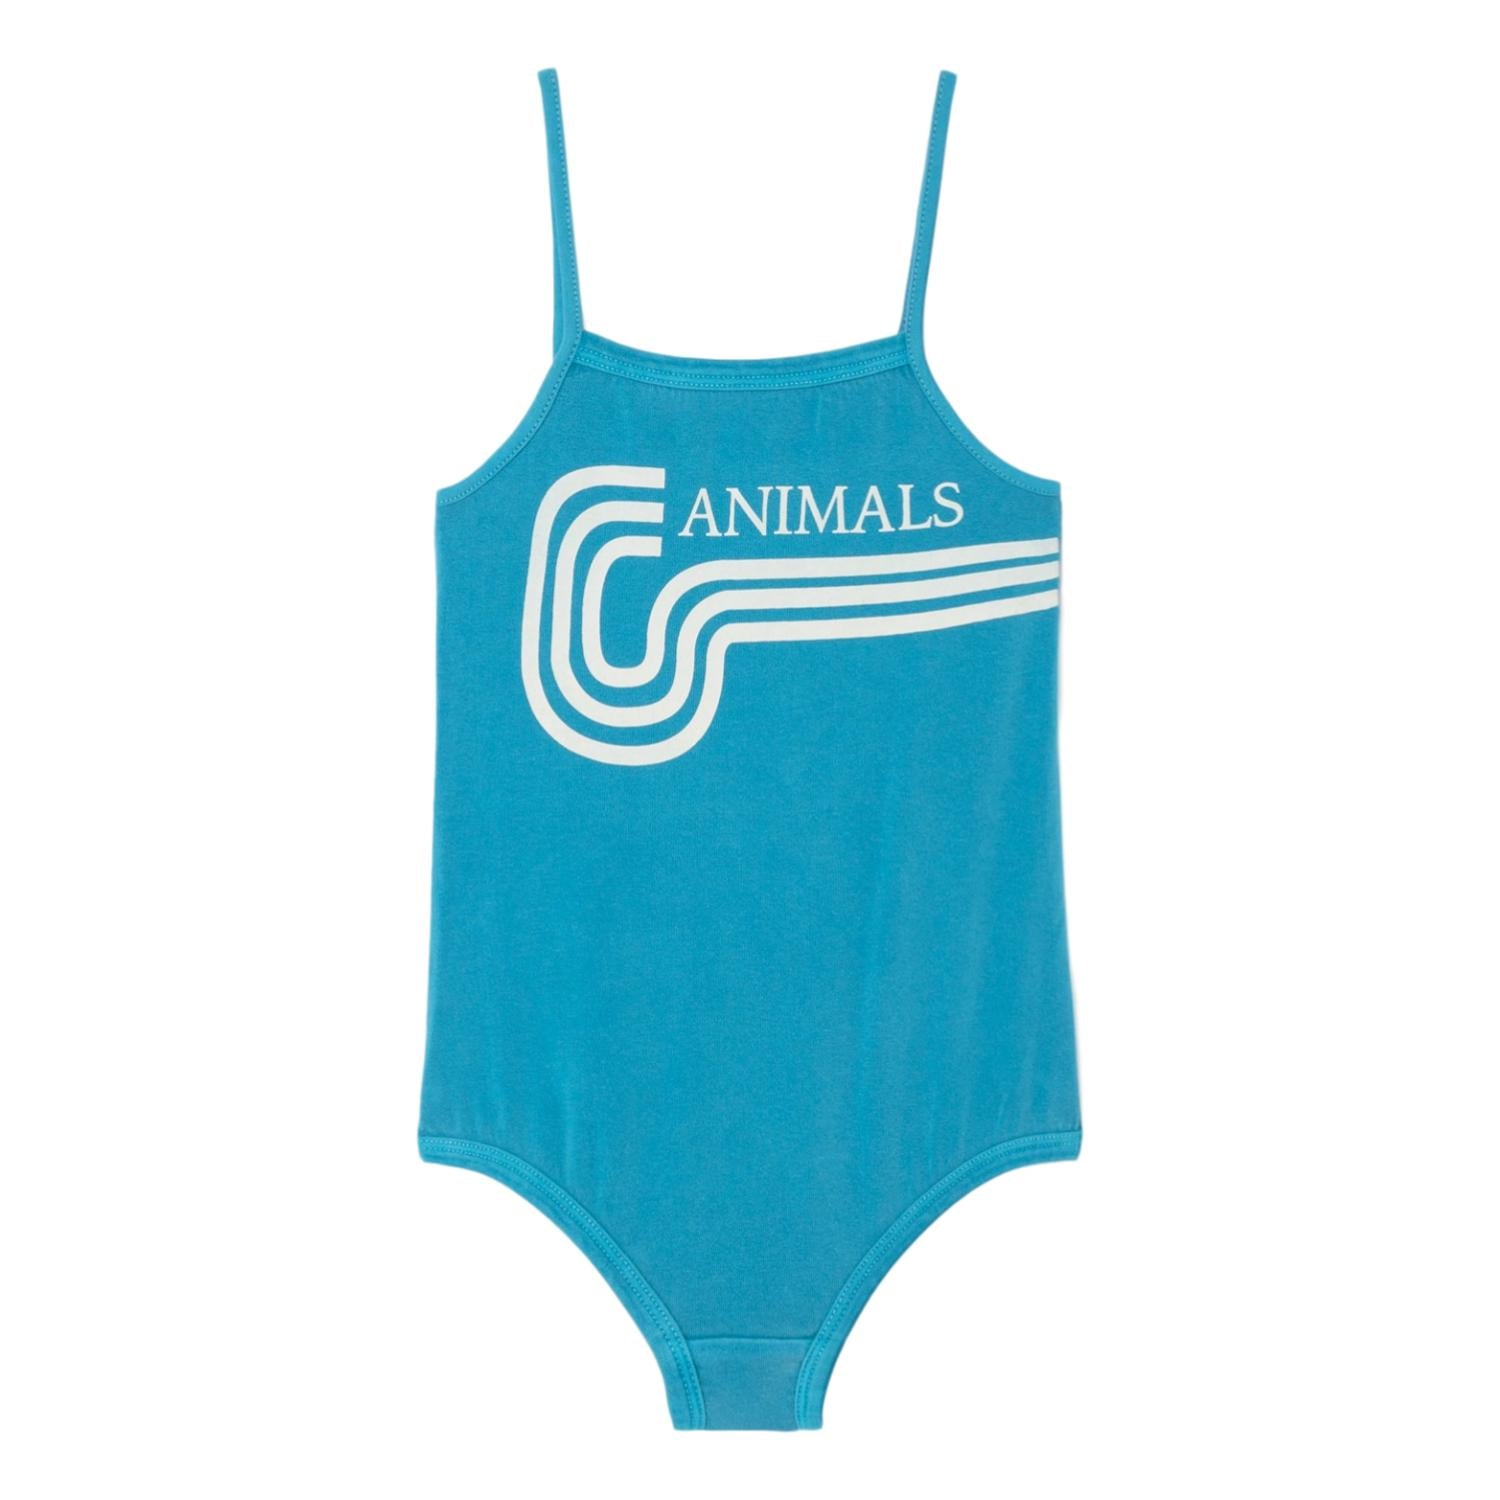 THE ANIMALS OBSERVATORY - Blue Animals Fish Kids Swimsuit